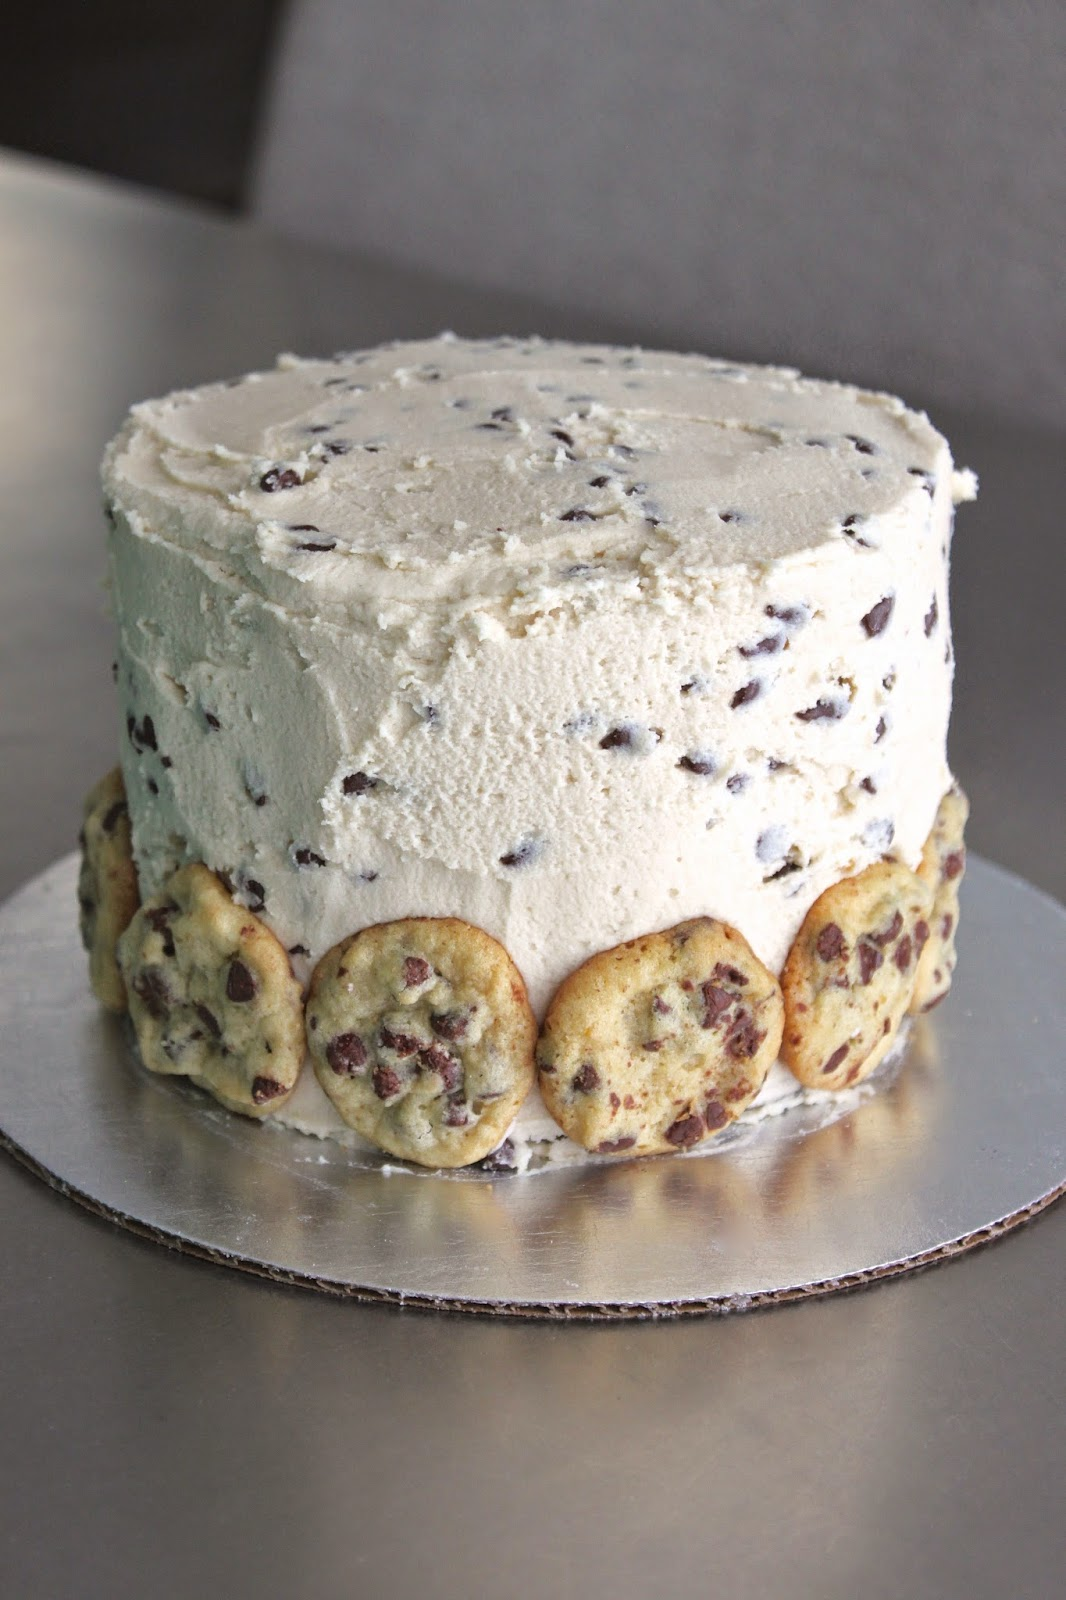 Baked Perfection Brown Sugar Cake With Cookie Dough Frosting